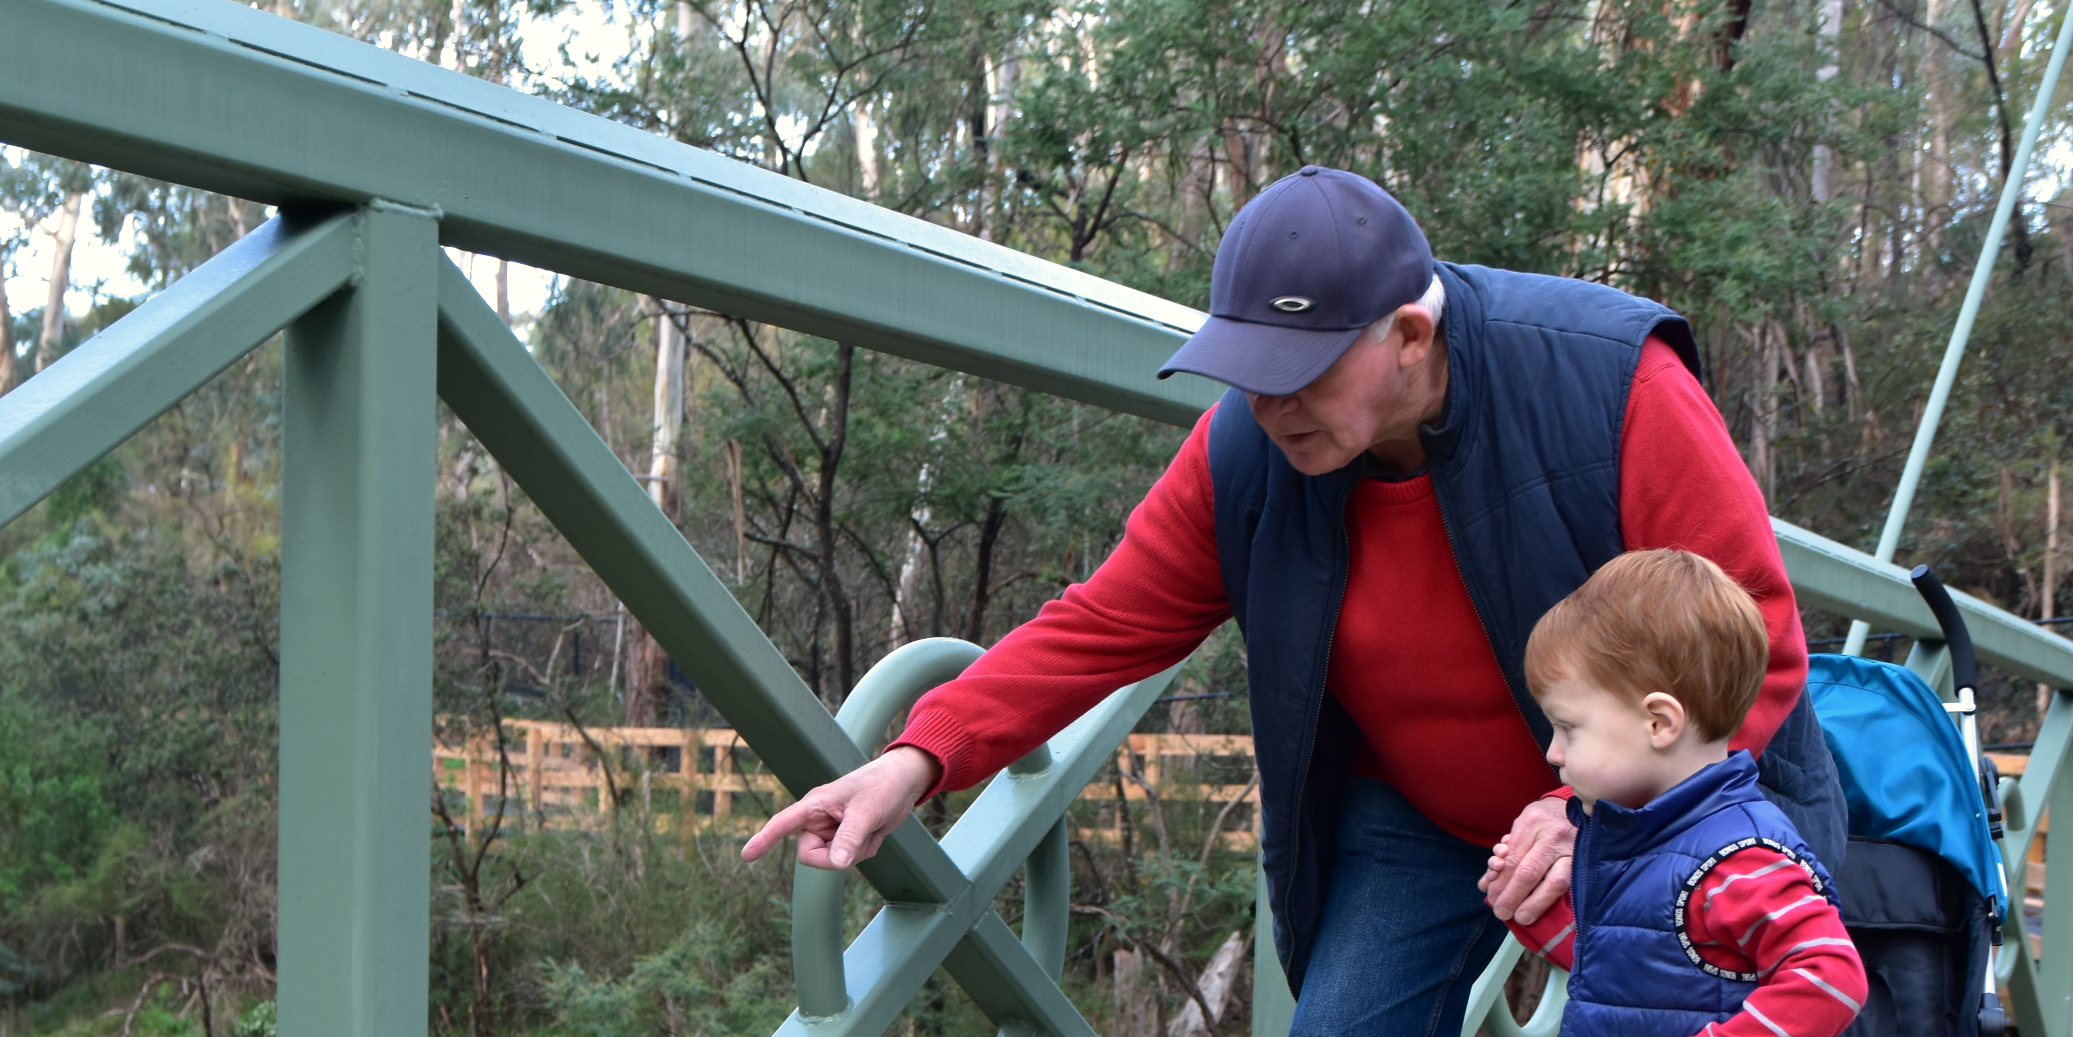 Grandparent and grandchild standing on a bridge looking down at the water below